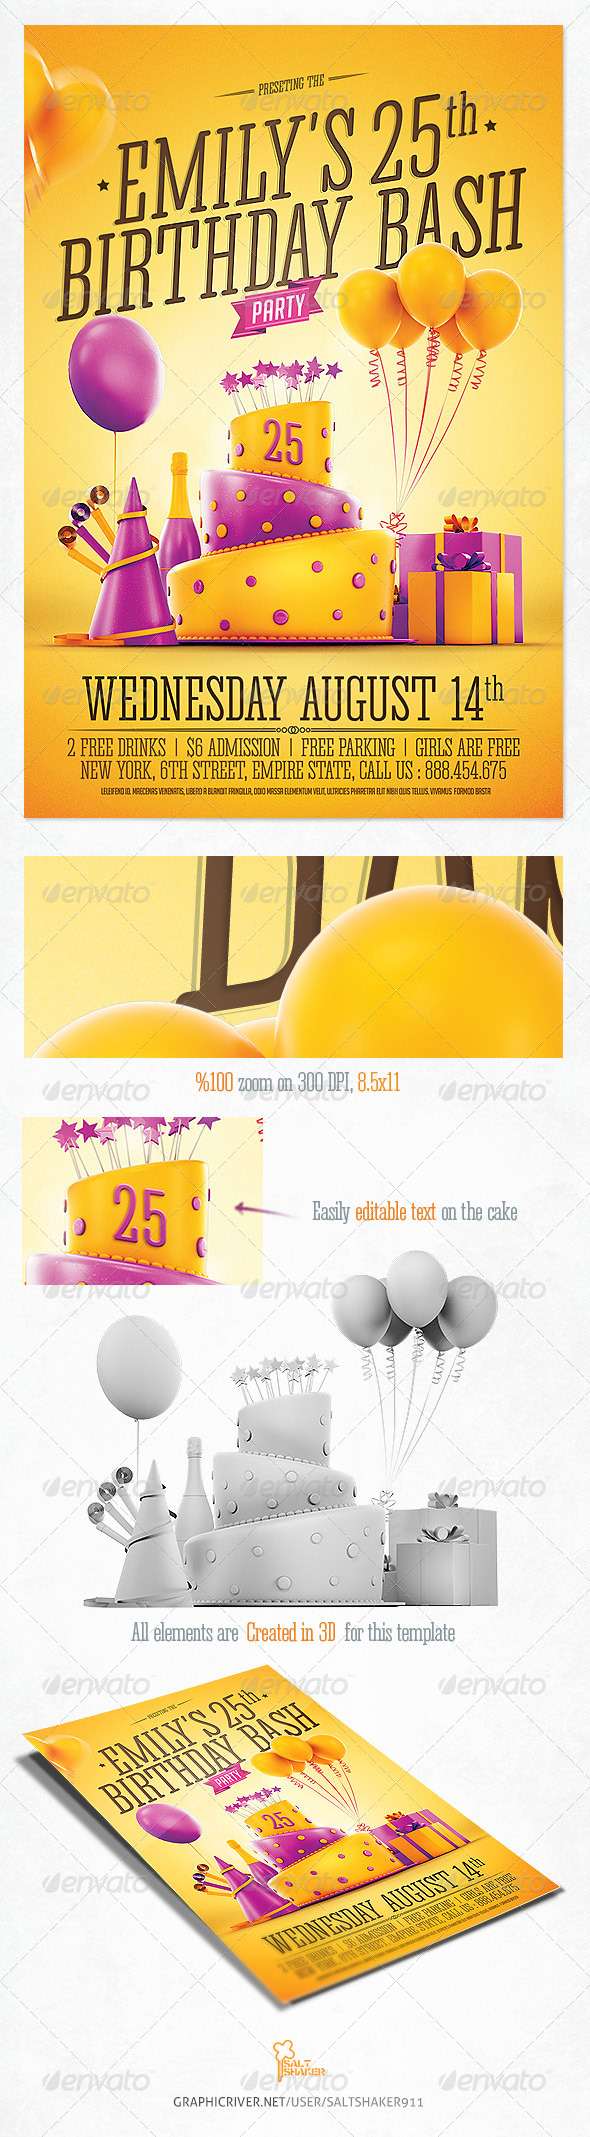 Birthday Party Invitation Flyer By Saltshaker GraphicRiver - Birthday party invitation flyer template